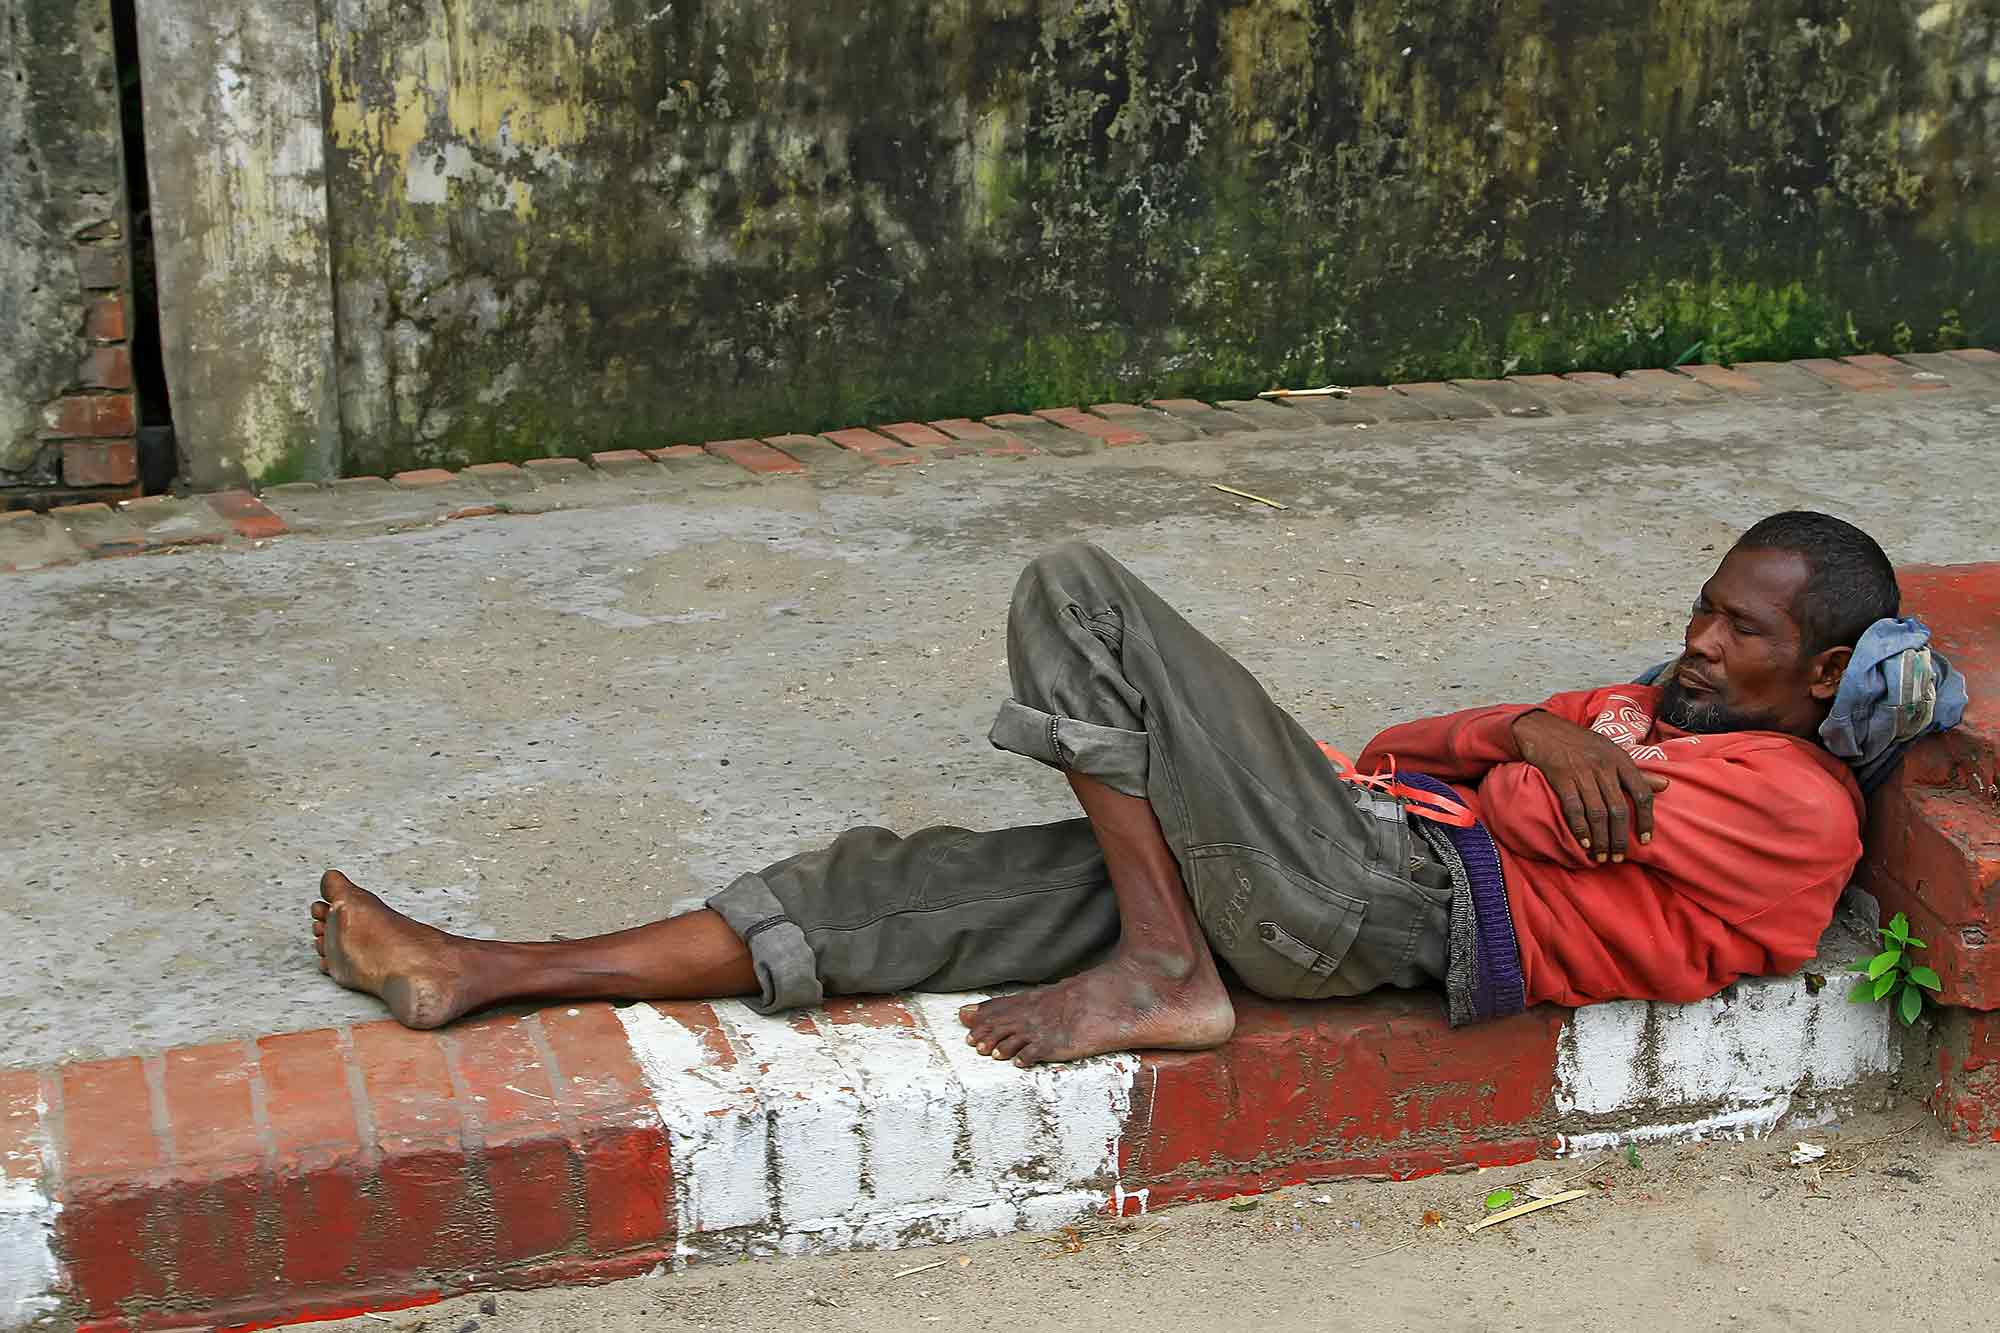 Sleeping in the streets of old Dhaka. © Ulli Maier & Nisa Maier